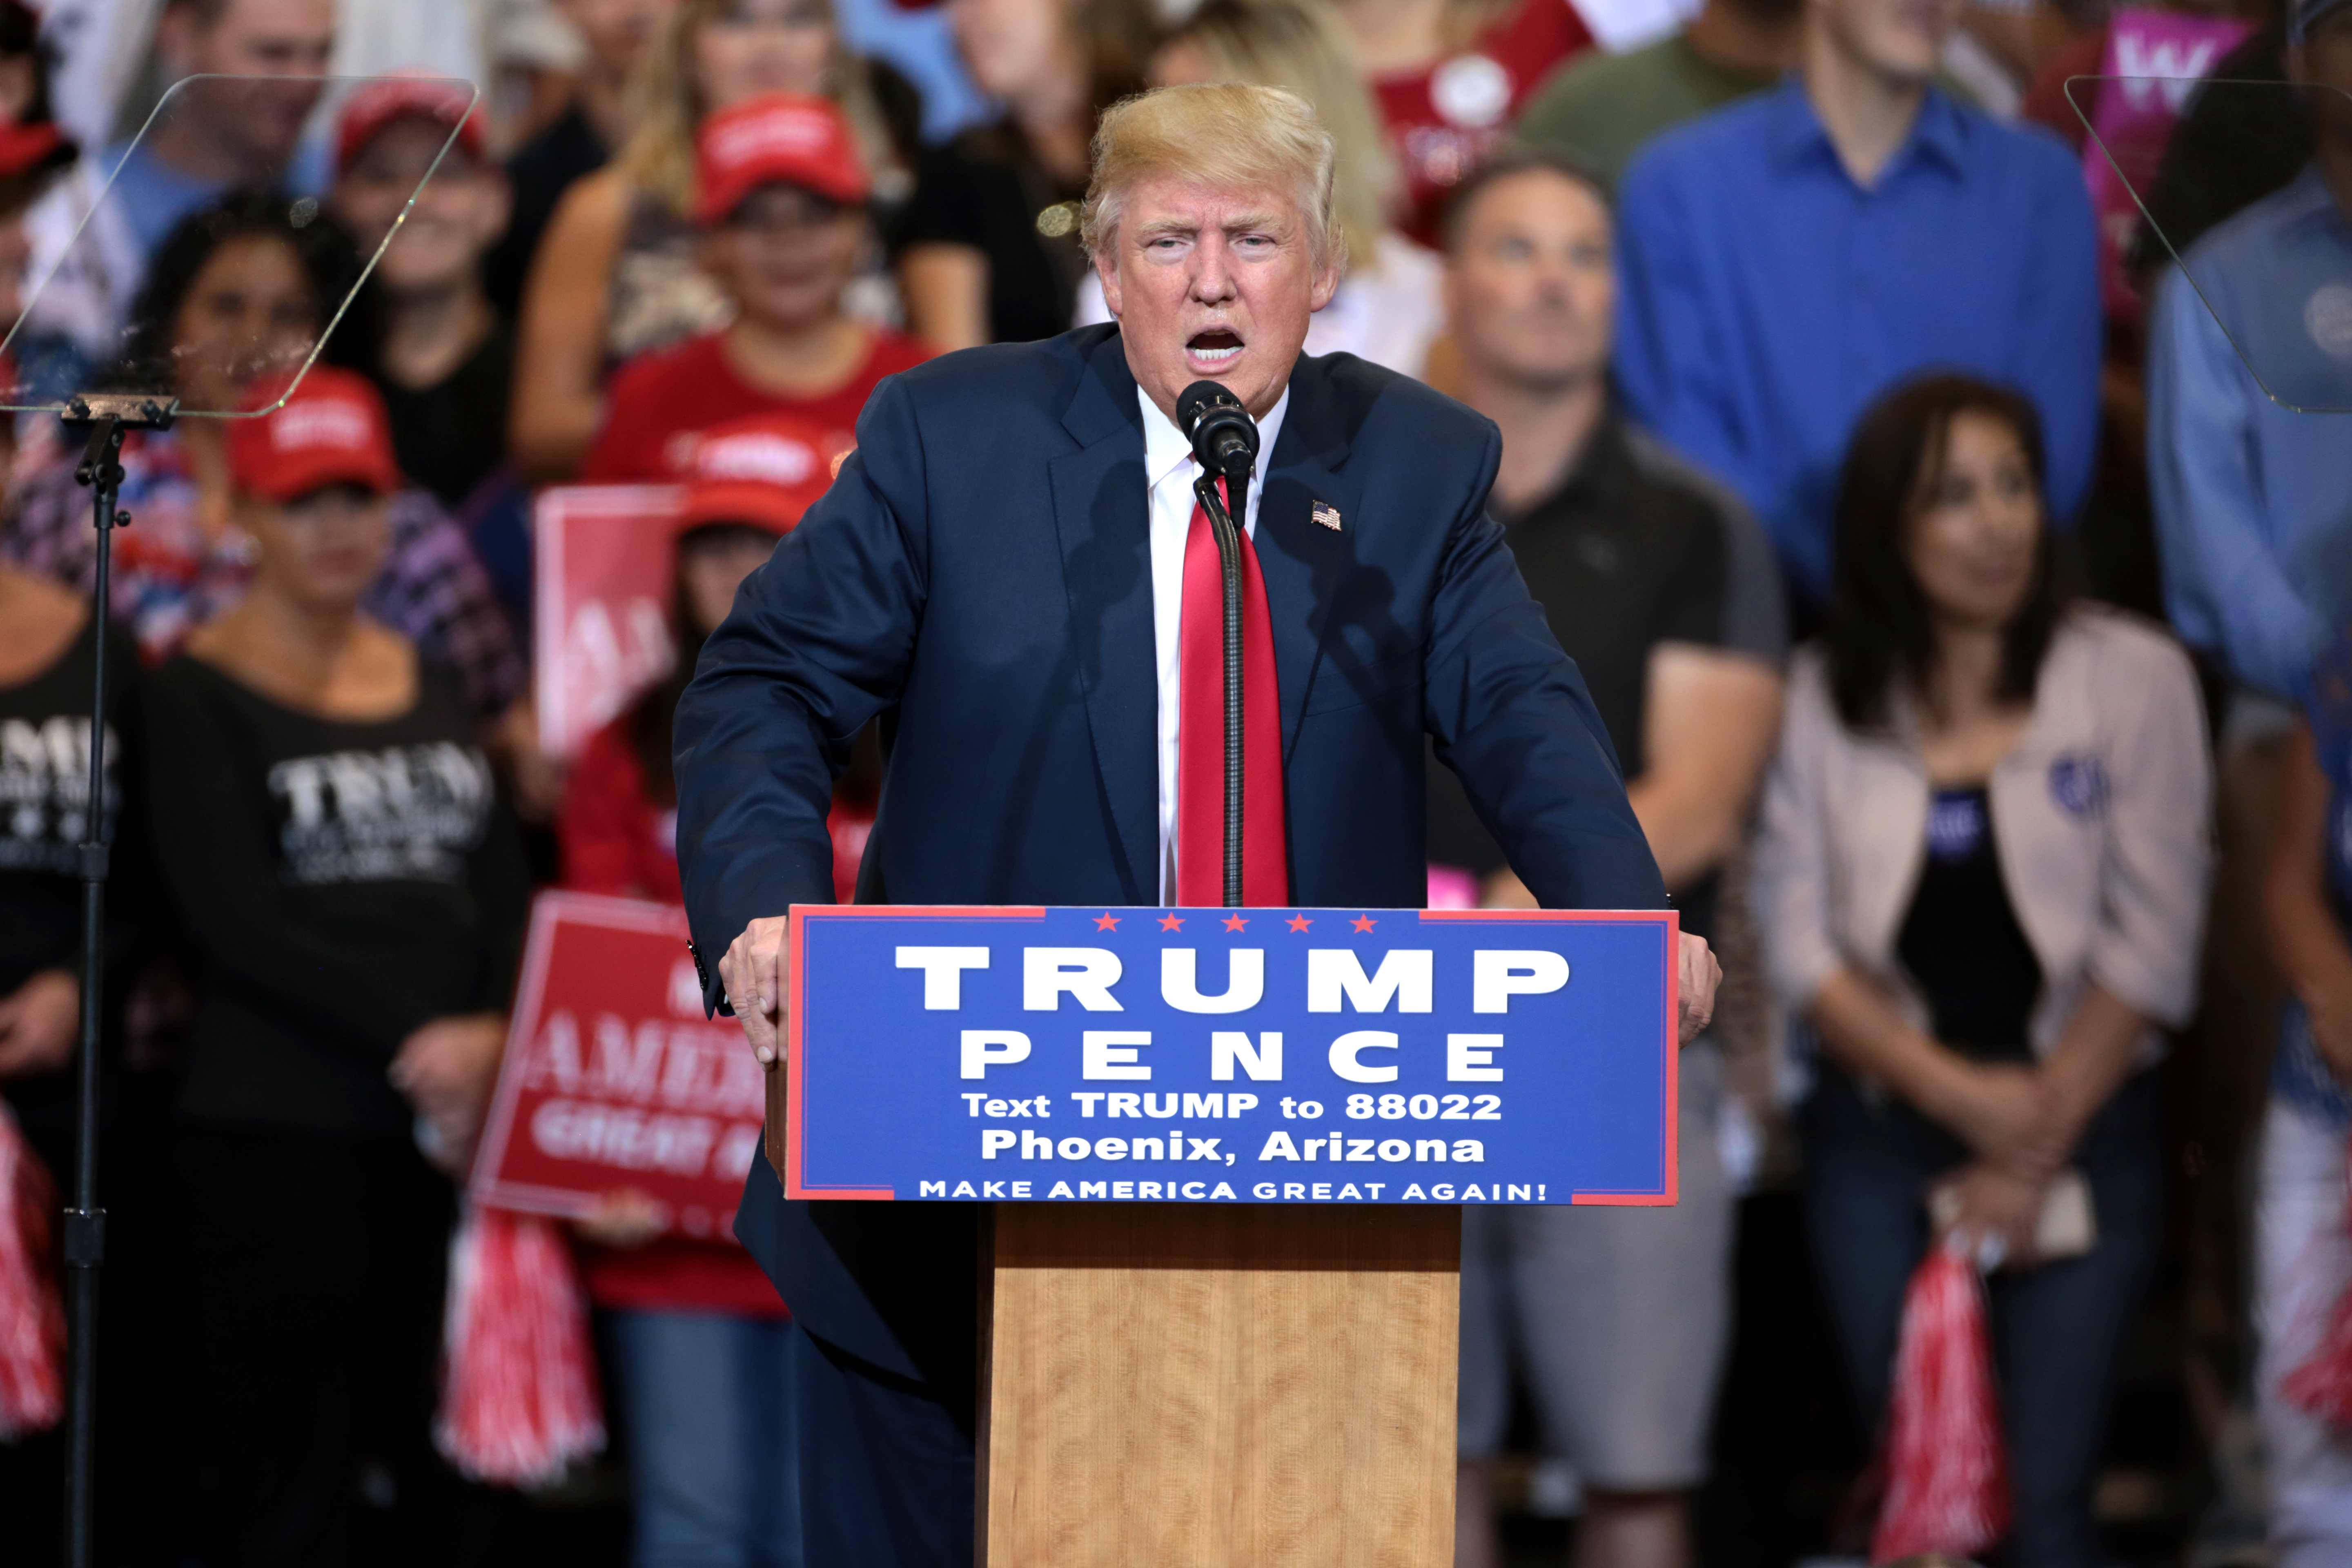 President Donald Trump speaks at a rally.